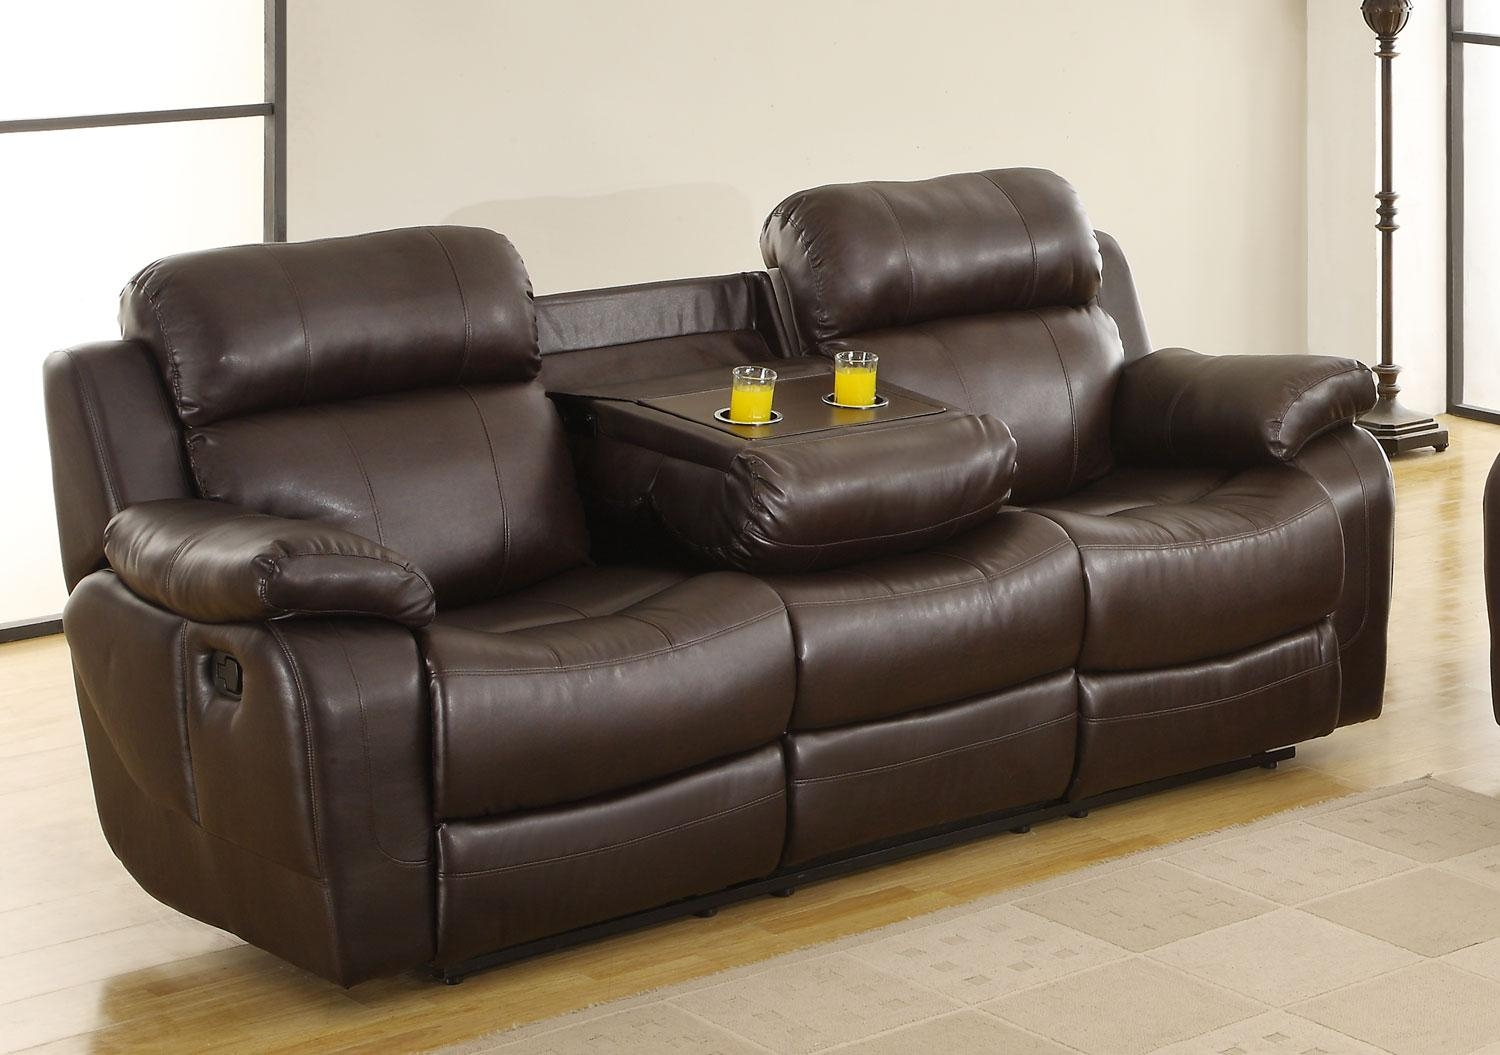 Sofas Center : Striking Double Recliner Sofa With Console Photos In Sofas With Console (View 7 of 20)